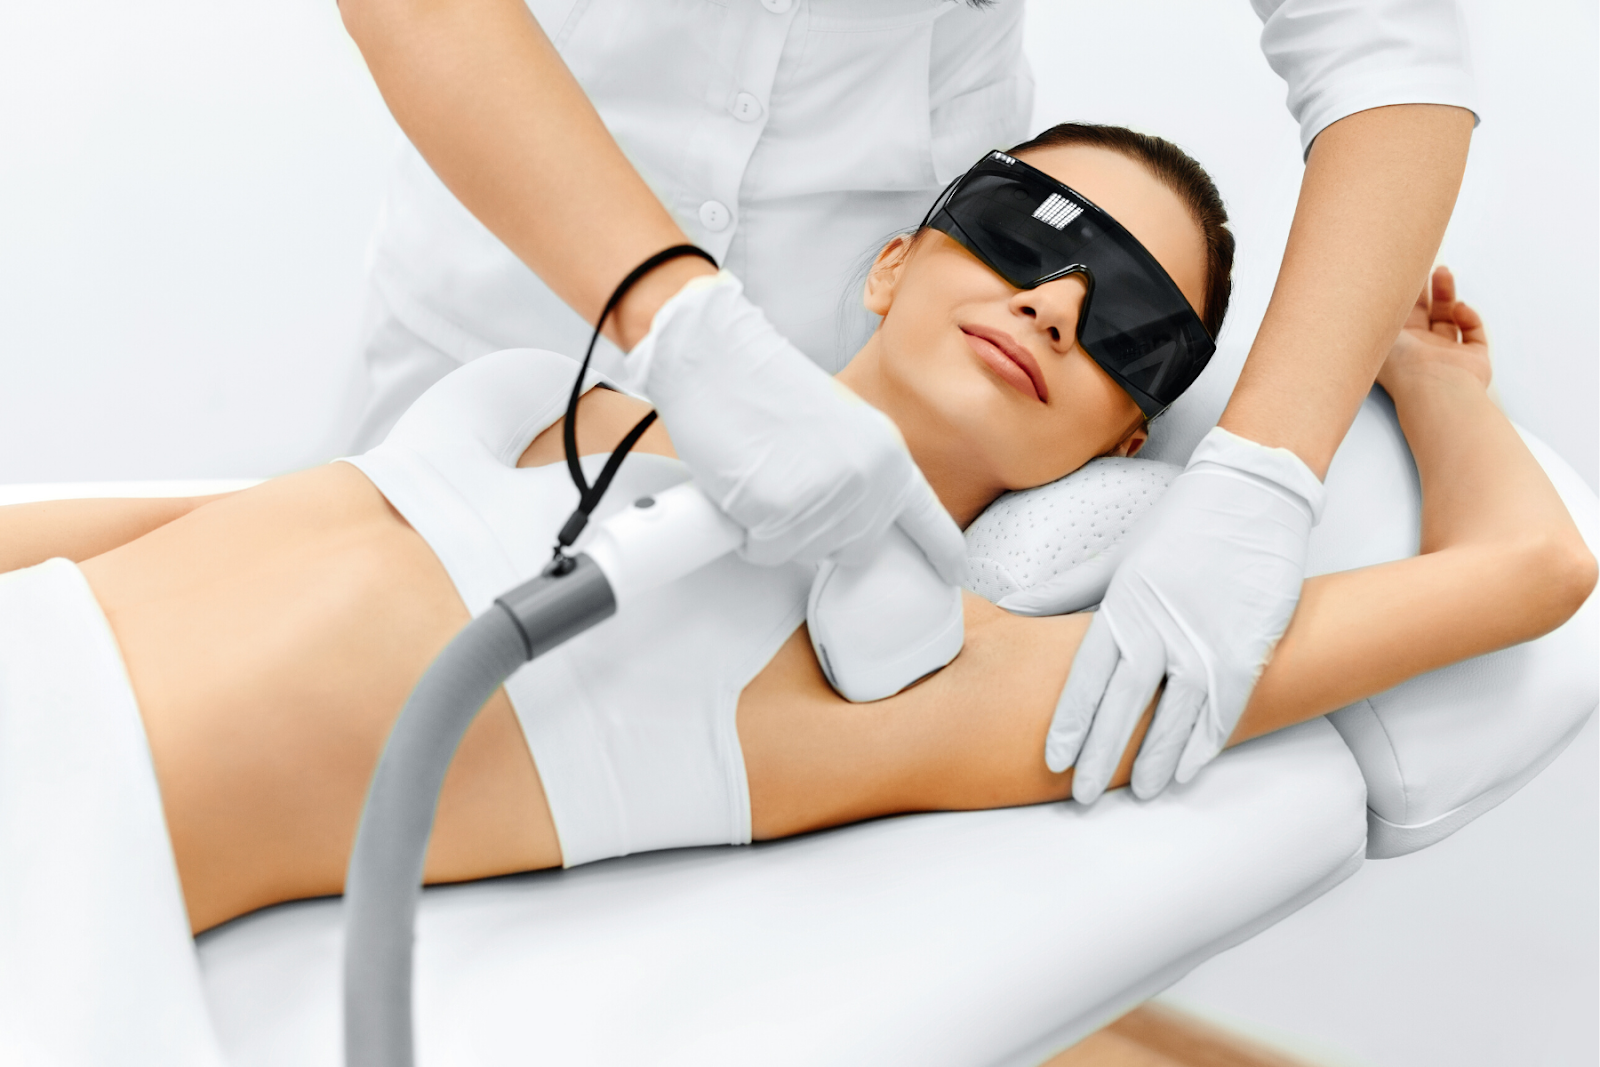 A woman receiving laser hair removal in Toronto on her armpits